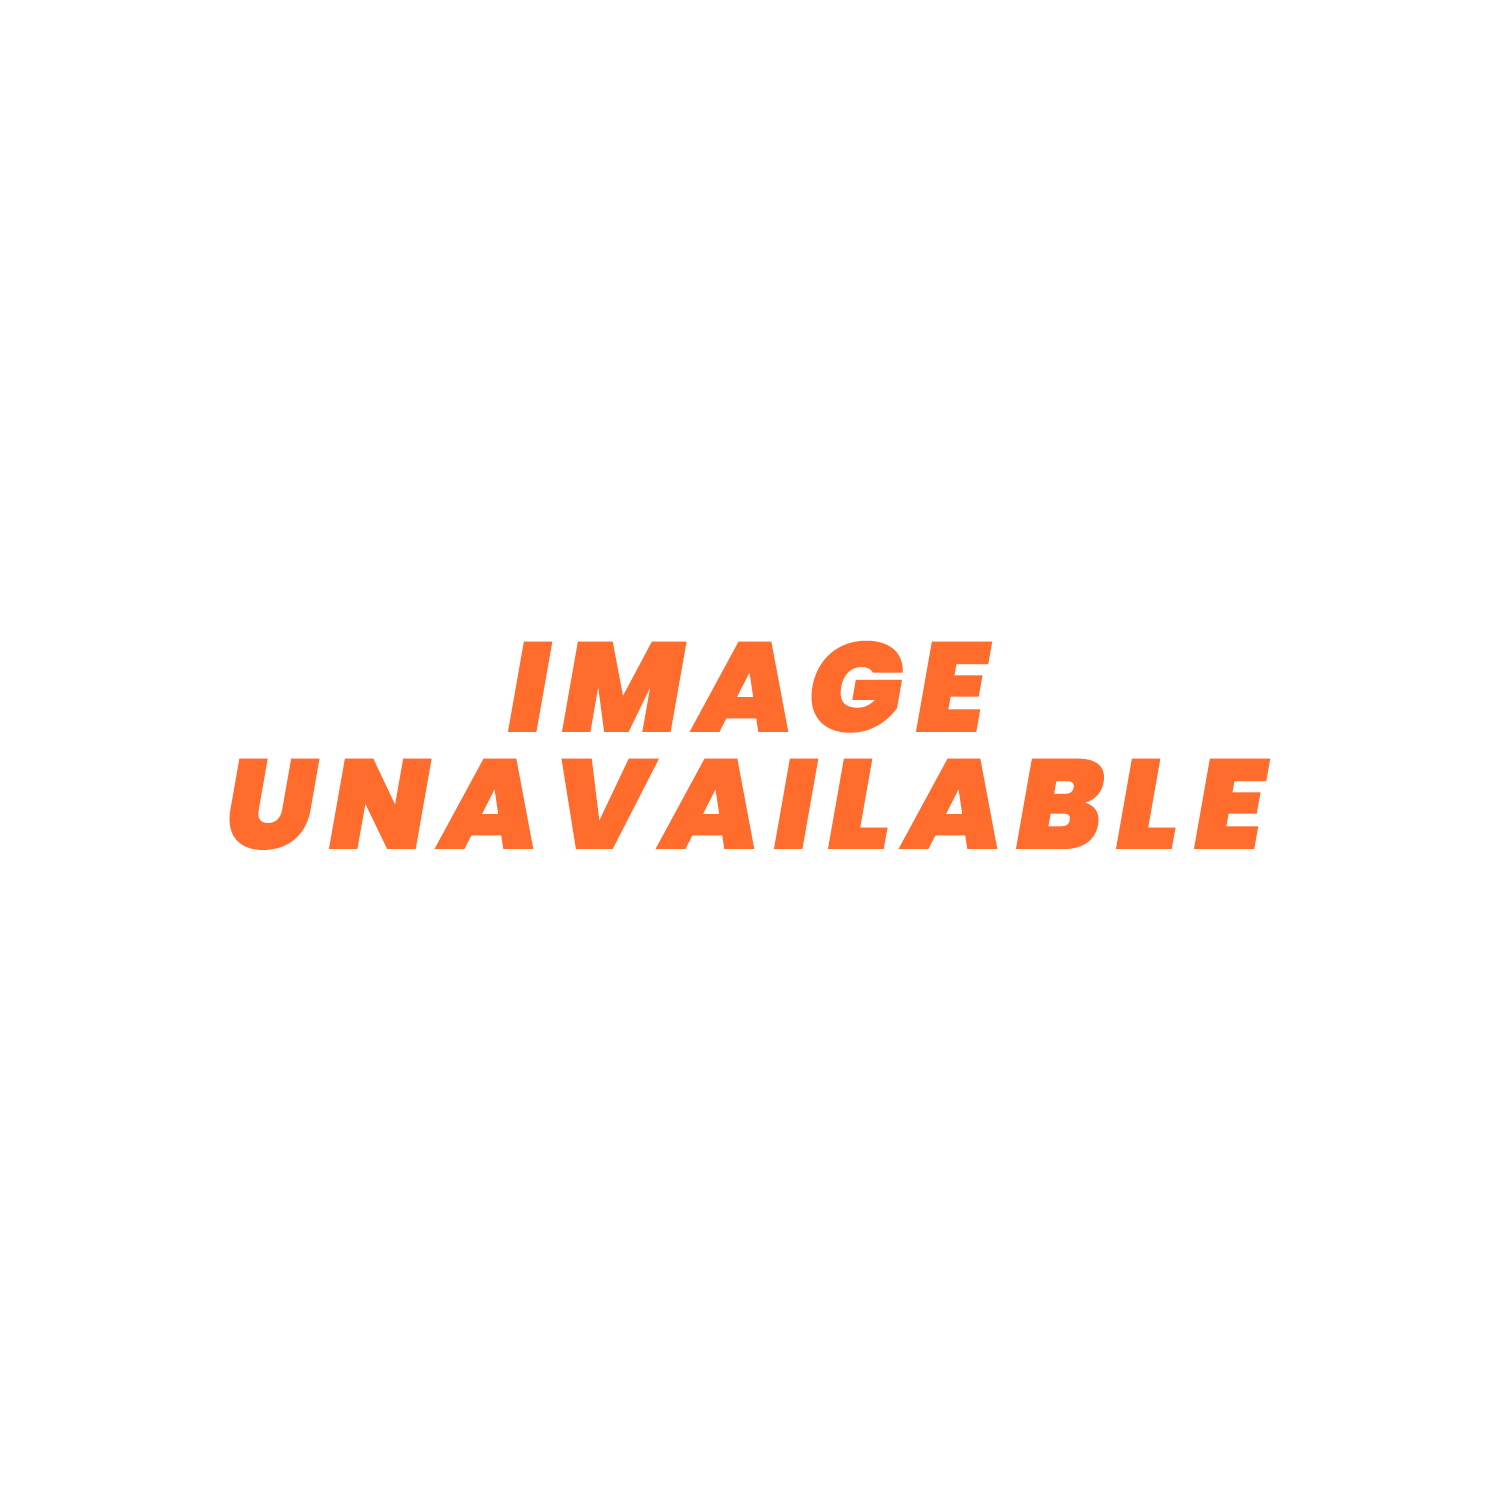 "SPAL Brushless Radiator Fan - 10.0"" (255mm) VA109-ABL321P/N-109A/SH 1347cfm"